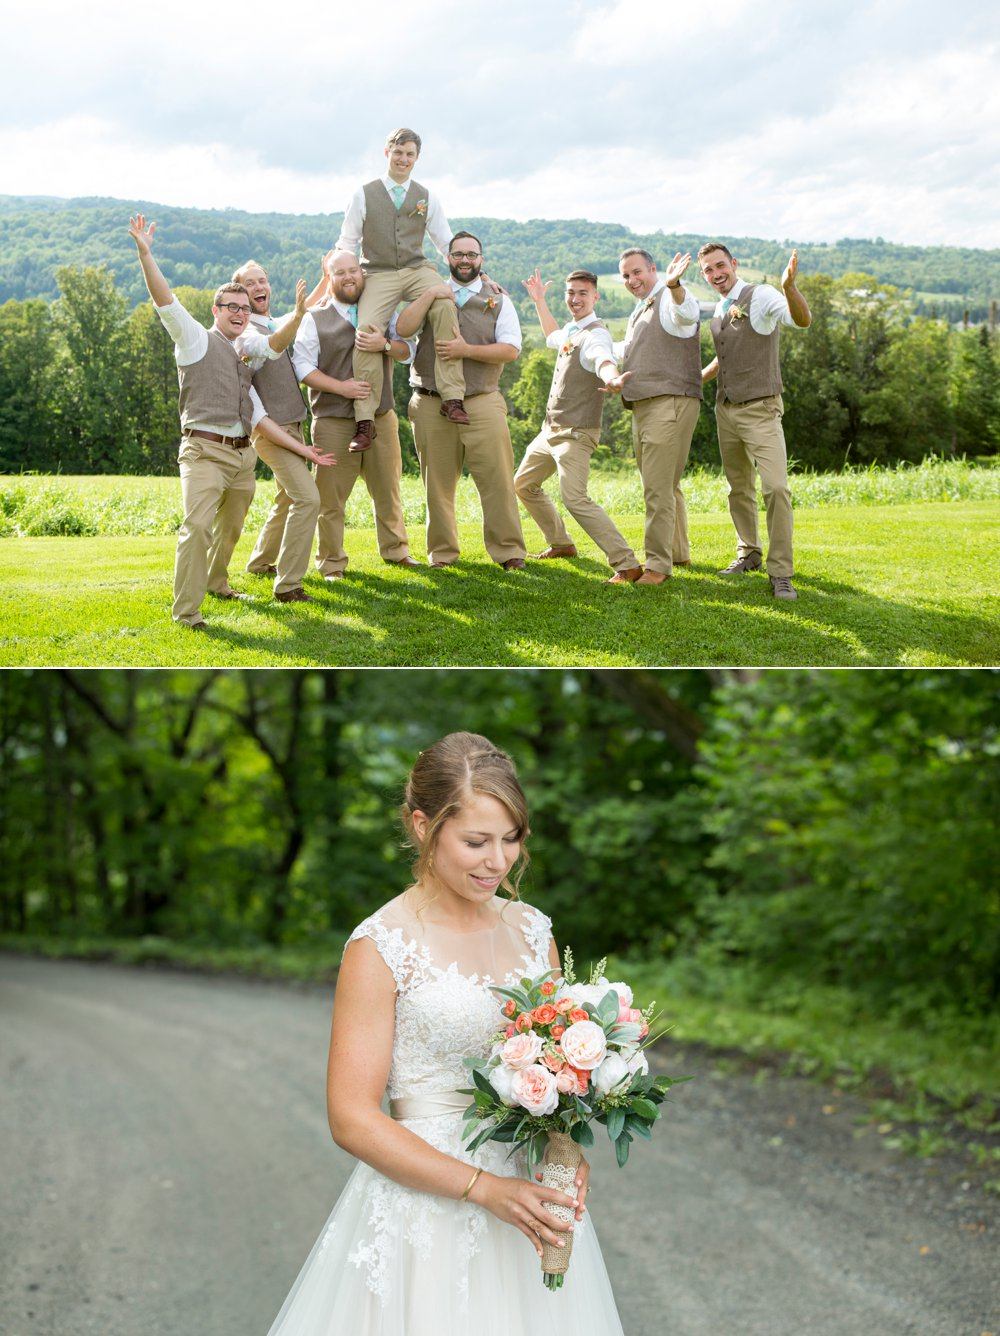 SomerbyJonesPhotography_VermontWedding_CyrBarn_CryBarnWedding_0033.jpg